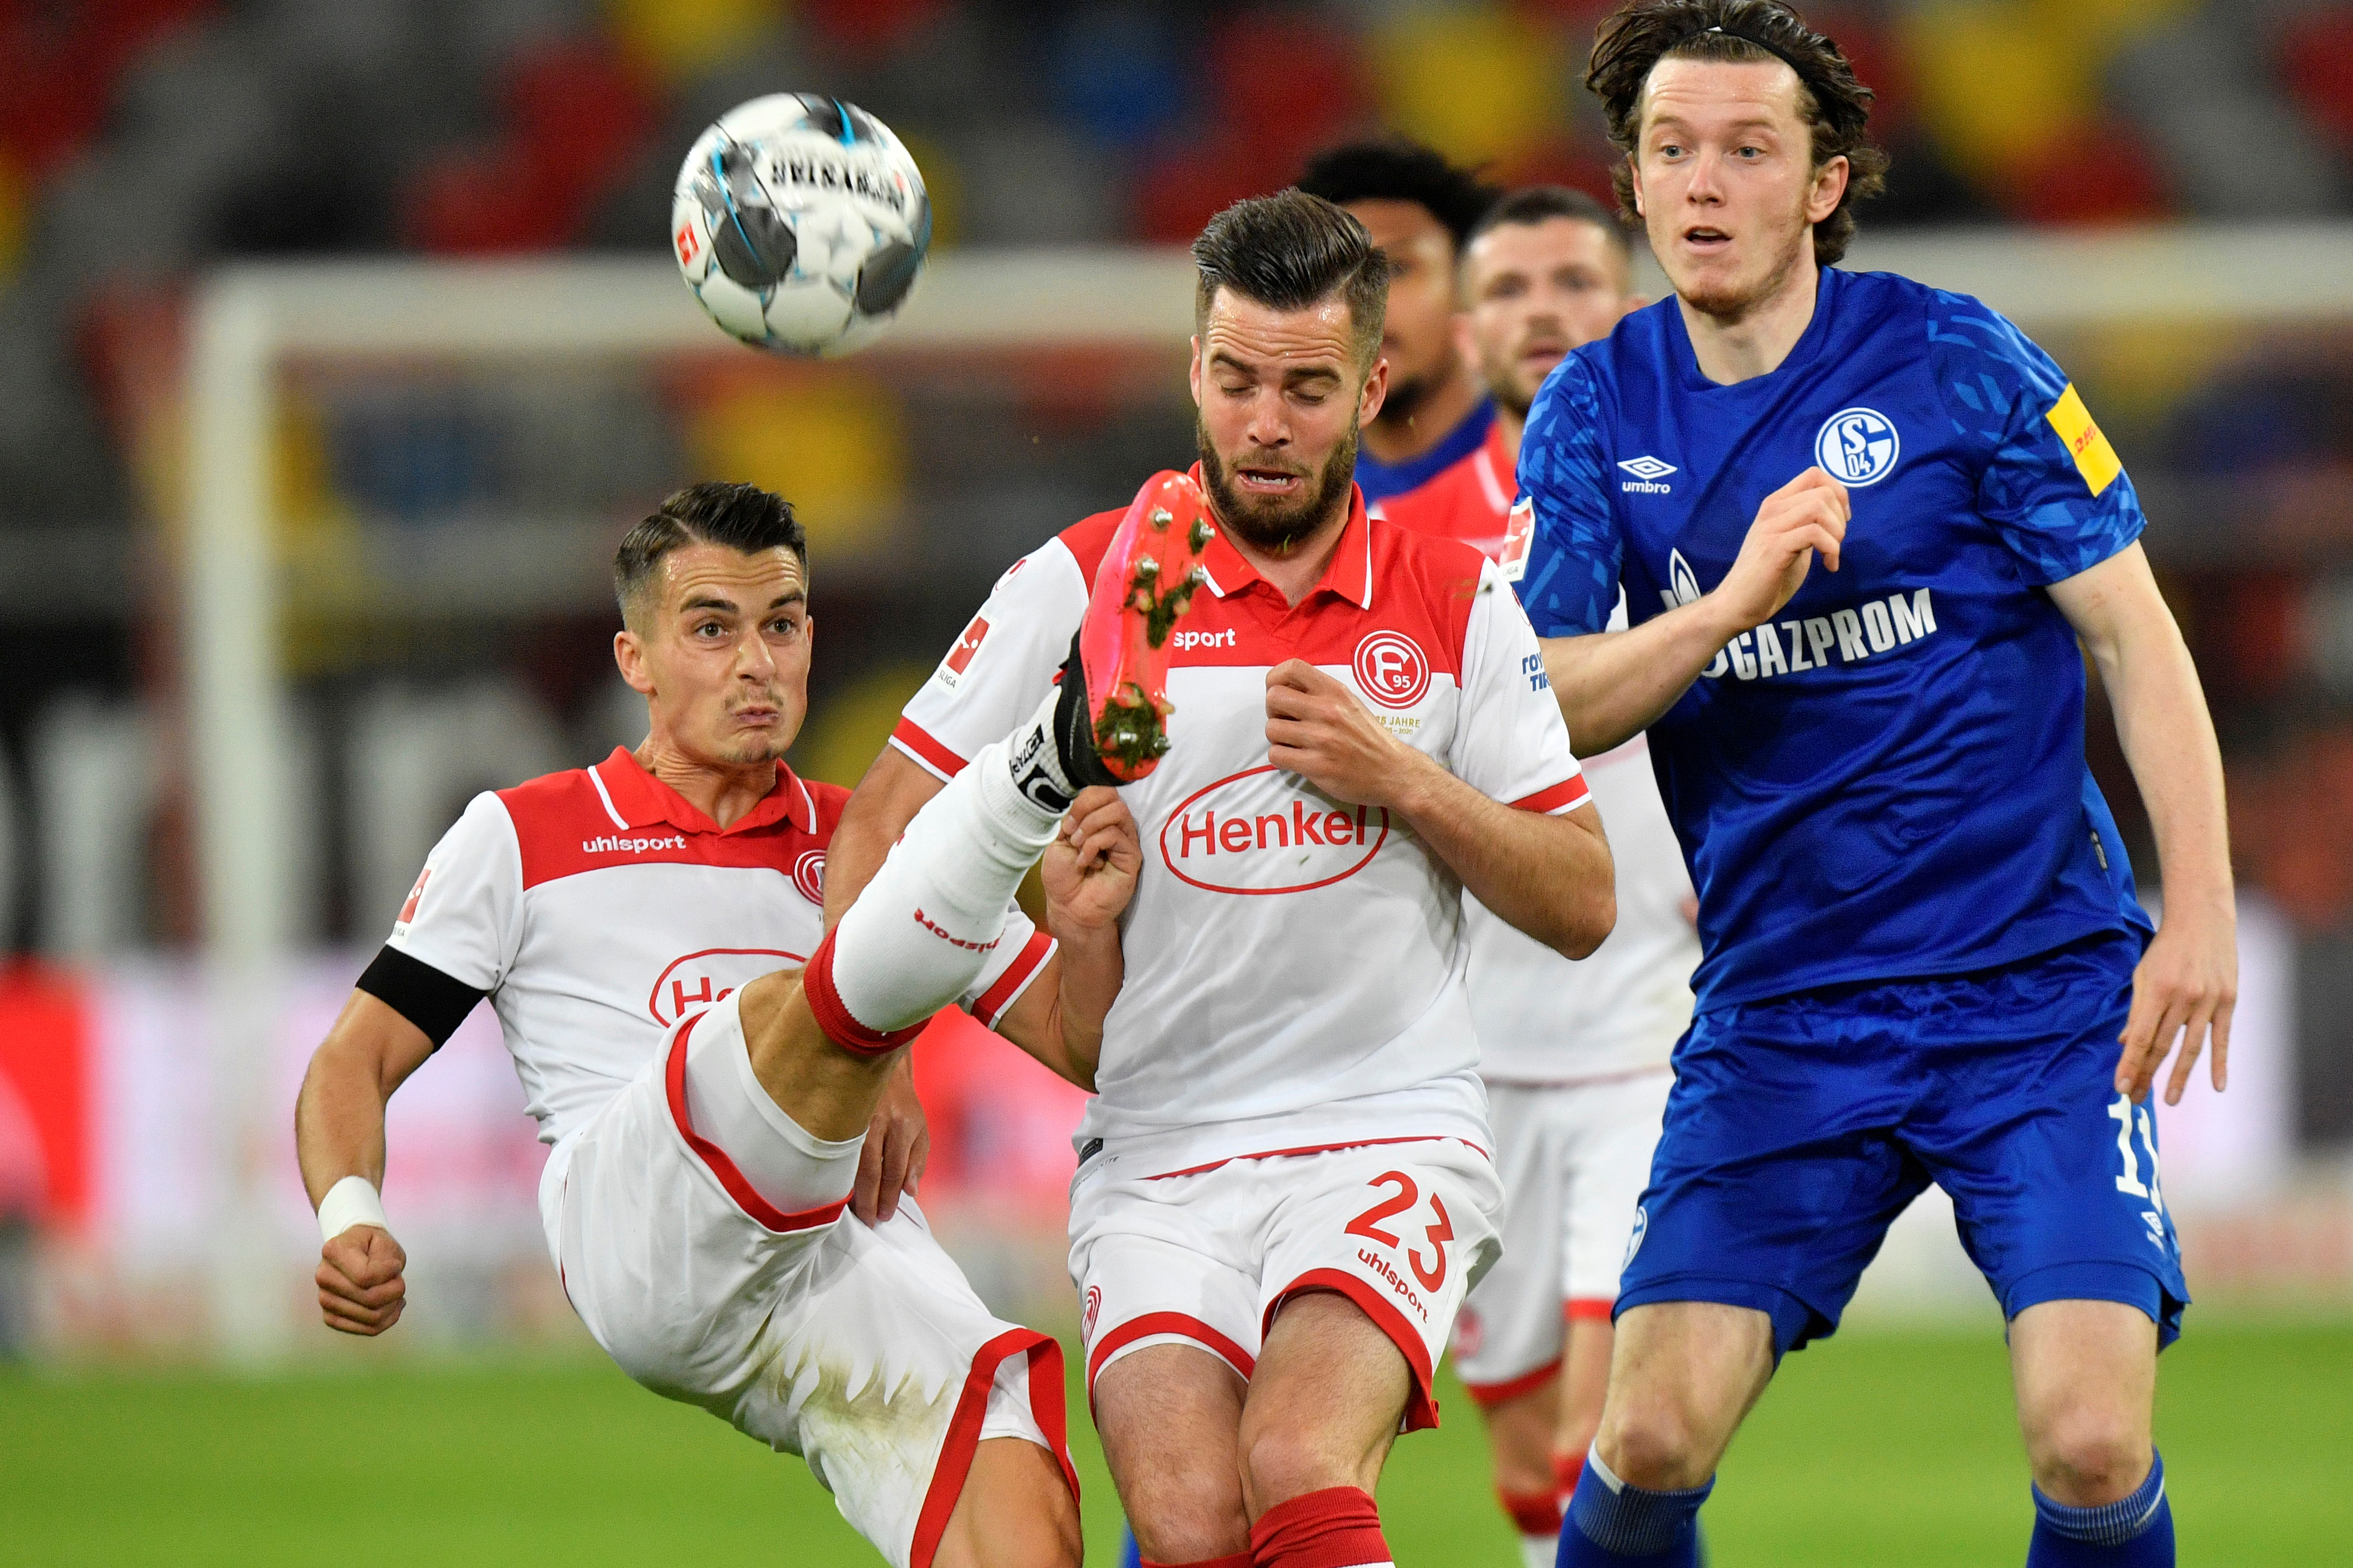 Schalke 04's Michael Gregoritsch in action with Fortuna Dusseldorf's Erik Thommy, as play resumes following the outbreak of the coronavirus disease (COVID-19) during the Bundesliga match between Fortuna Dusseldorf and Schalke 04, at Merkur Spiel-Arena,in  Dusseldorf, Germany, on May 27, 2020. Photo:  Martin Meissner/Pool via Reuters